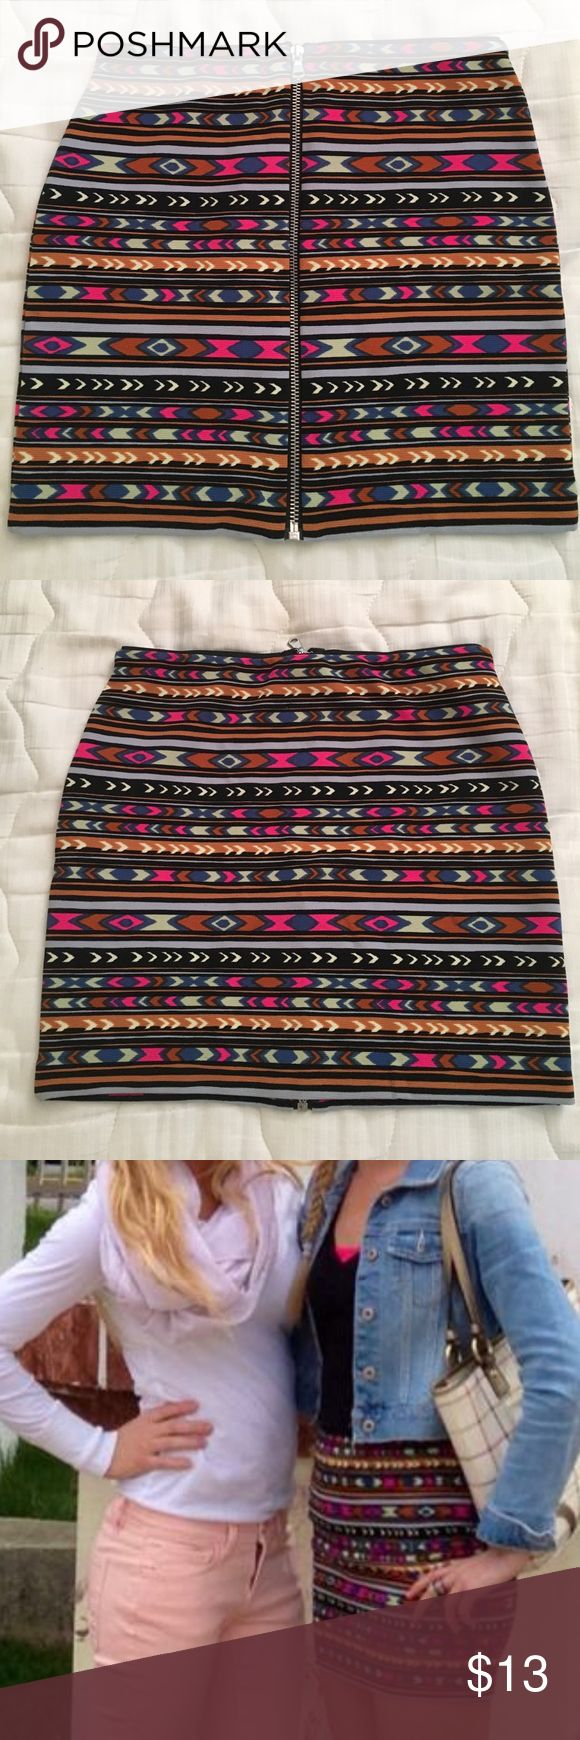 Tribal print Bodycon Forever 21 Skirt! Like new! Worn once, like new! Cute bodycon print skirt with zipper down the entire front or back (can be worn either way). Size small. Forever 21 Skirts Mini